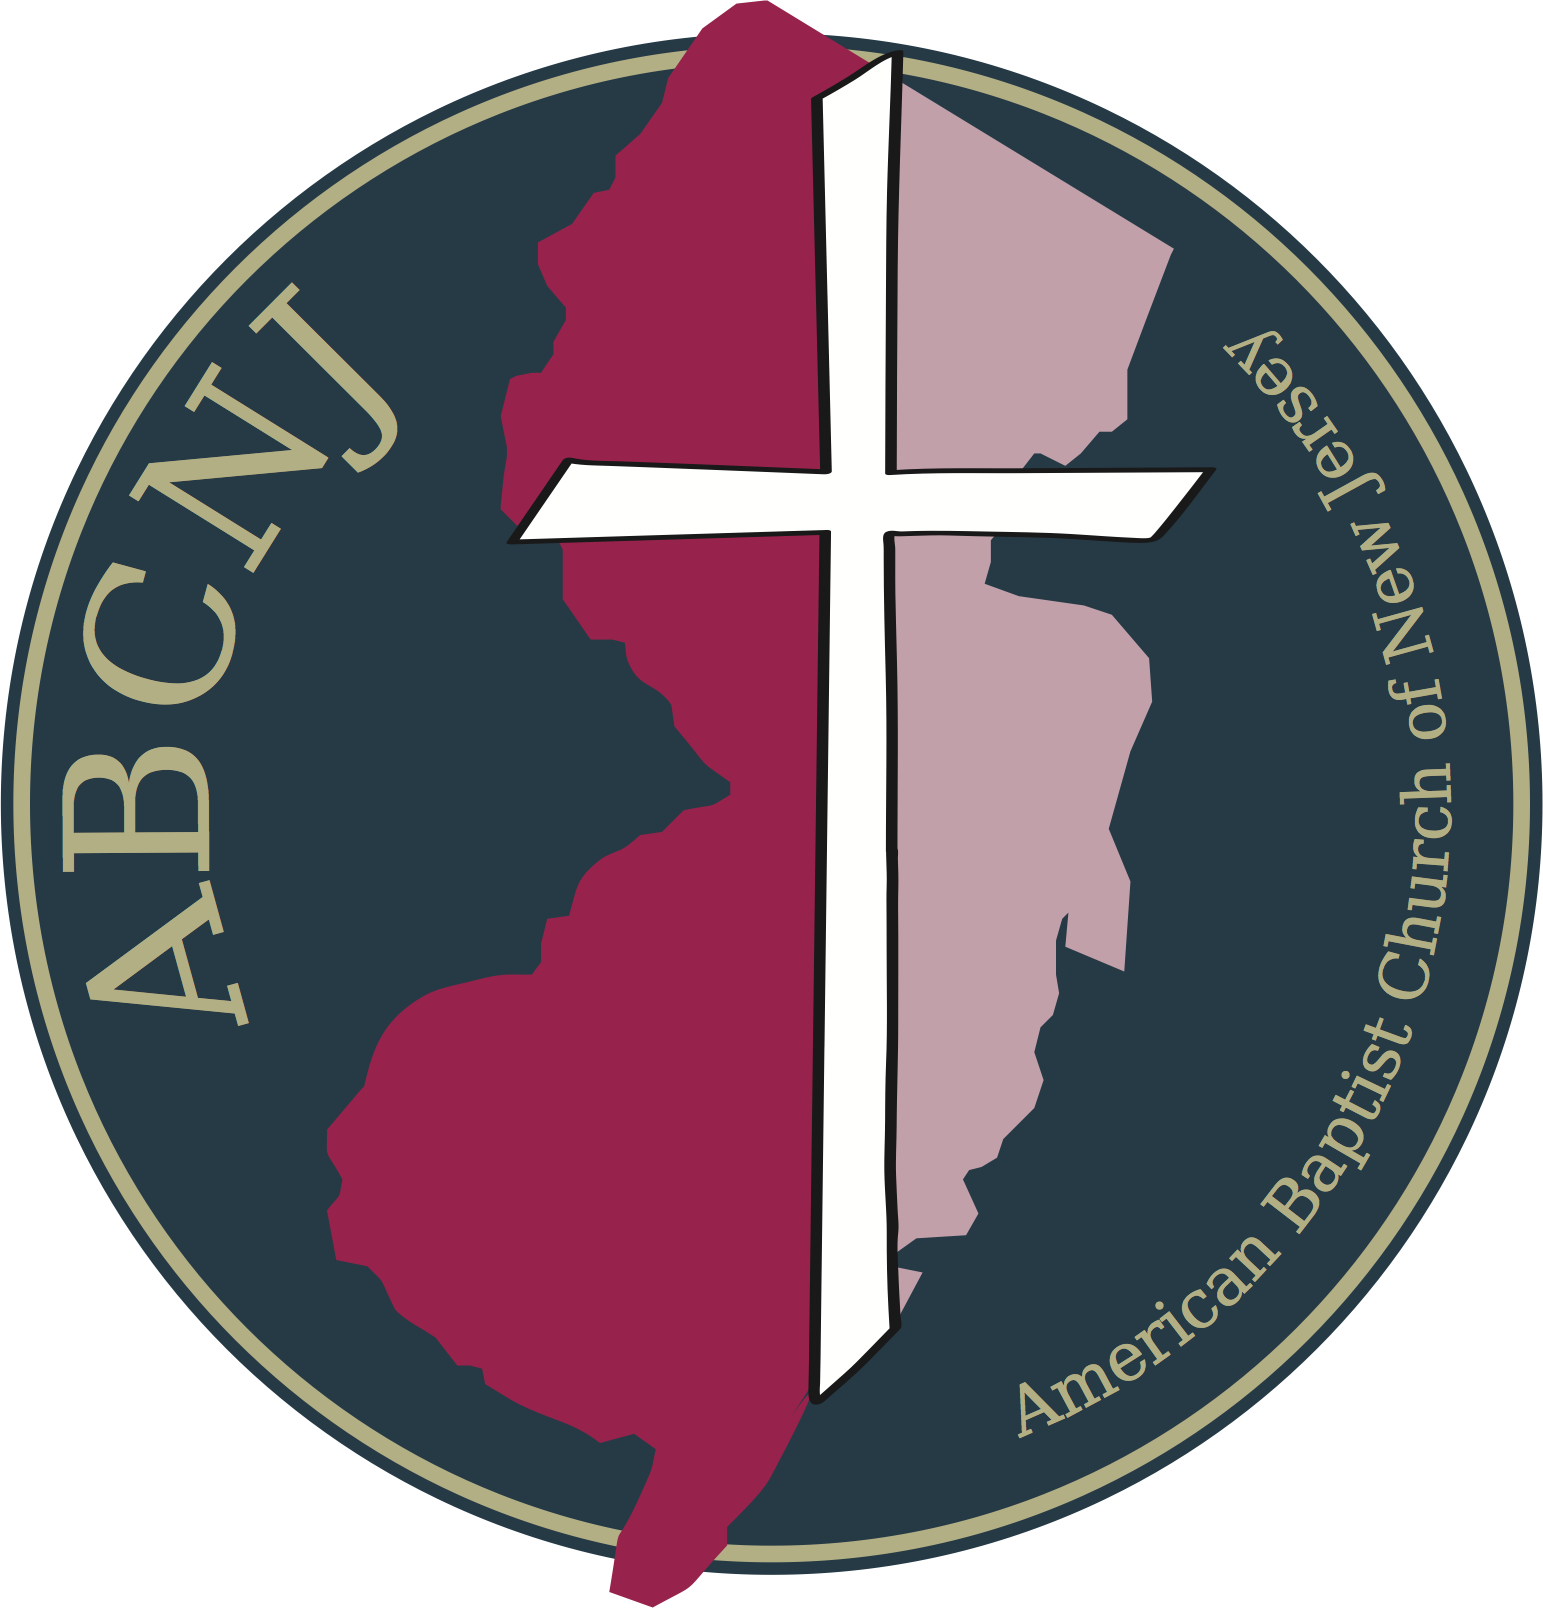 ABCNJ - The American Baptist Churches of New Jersey